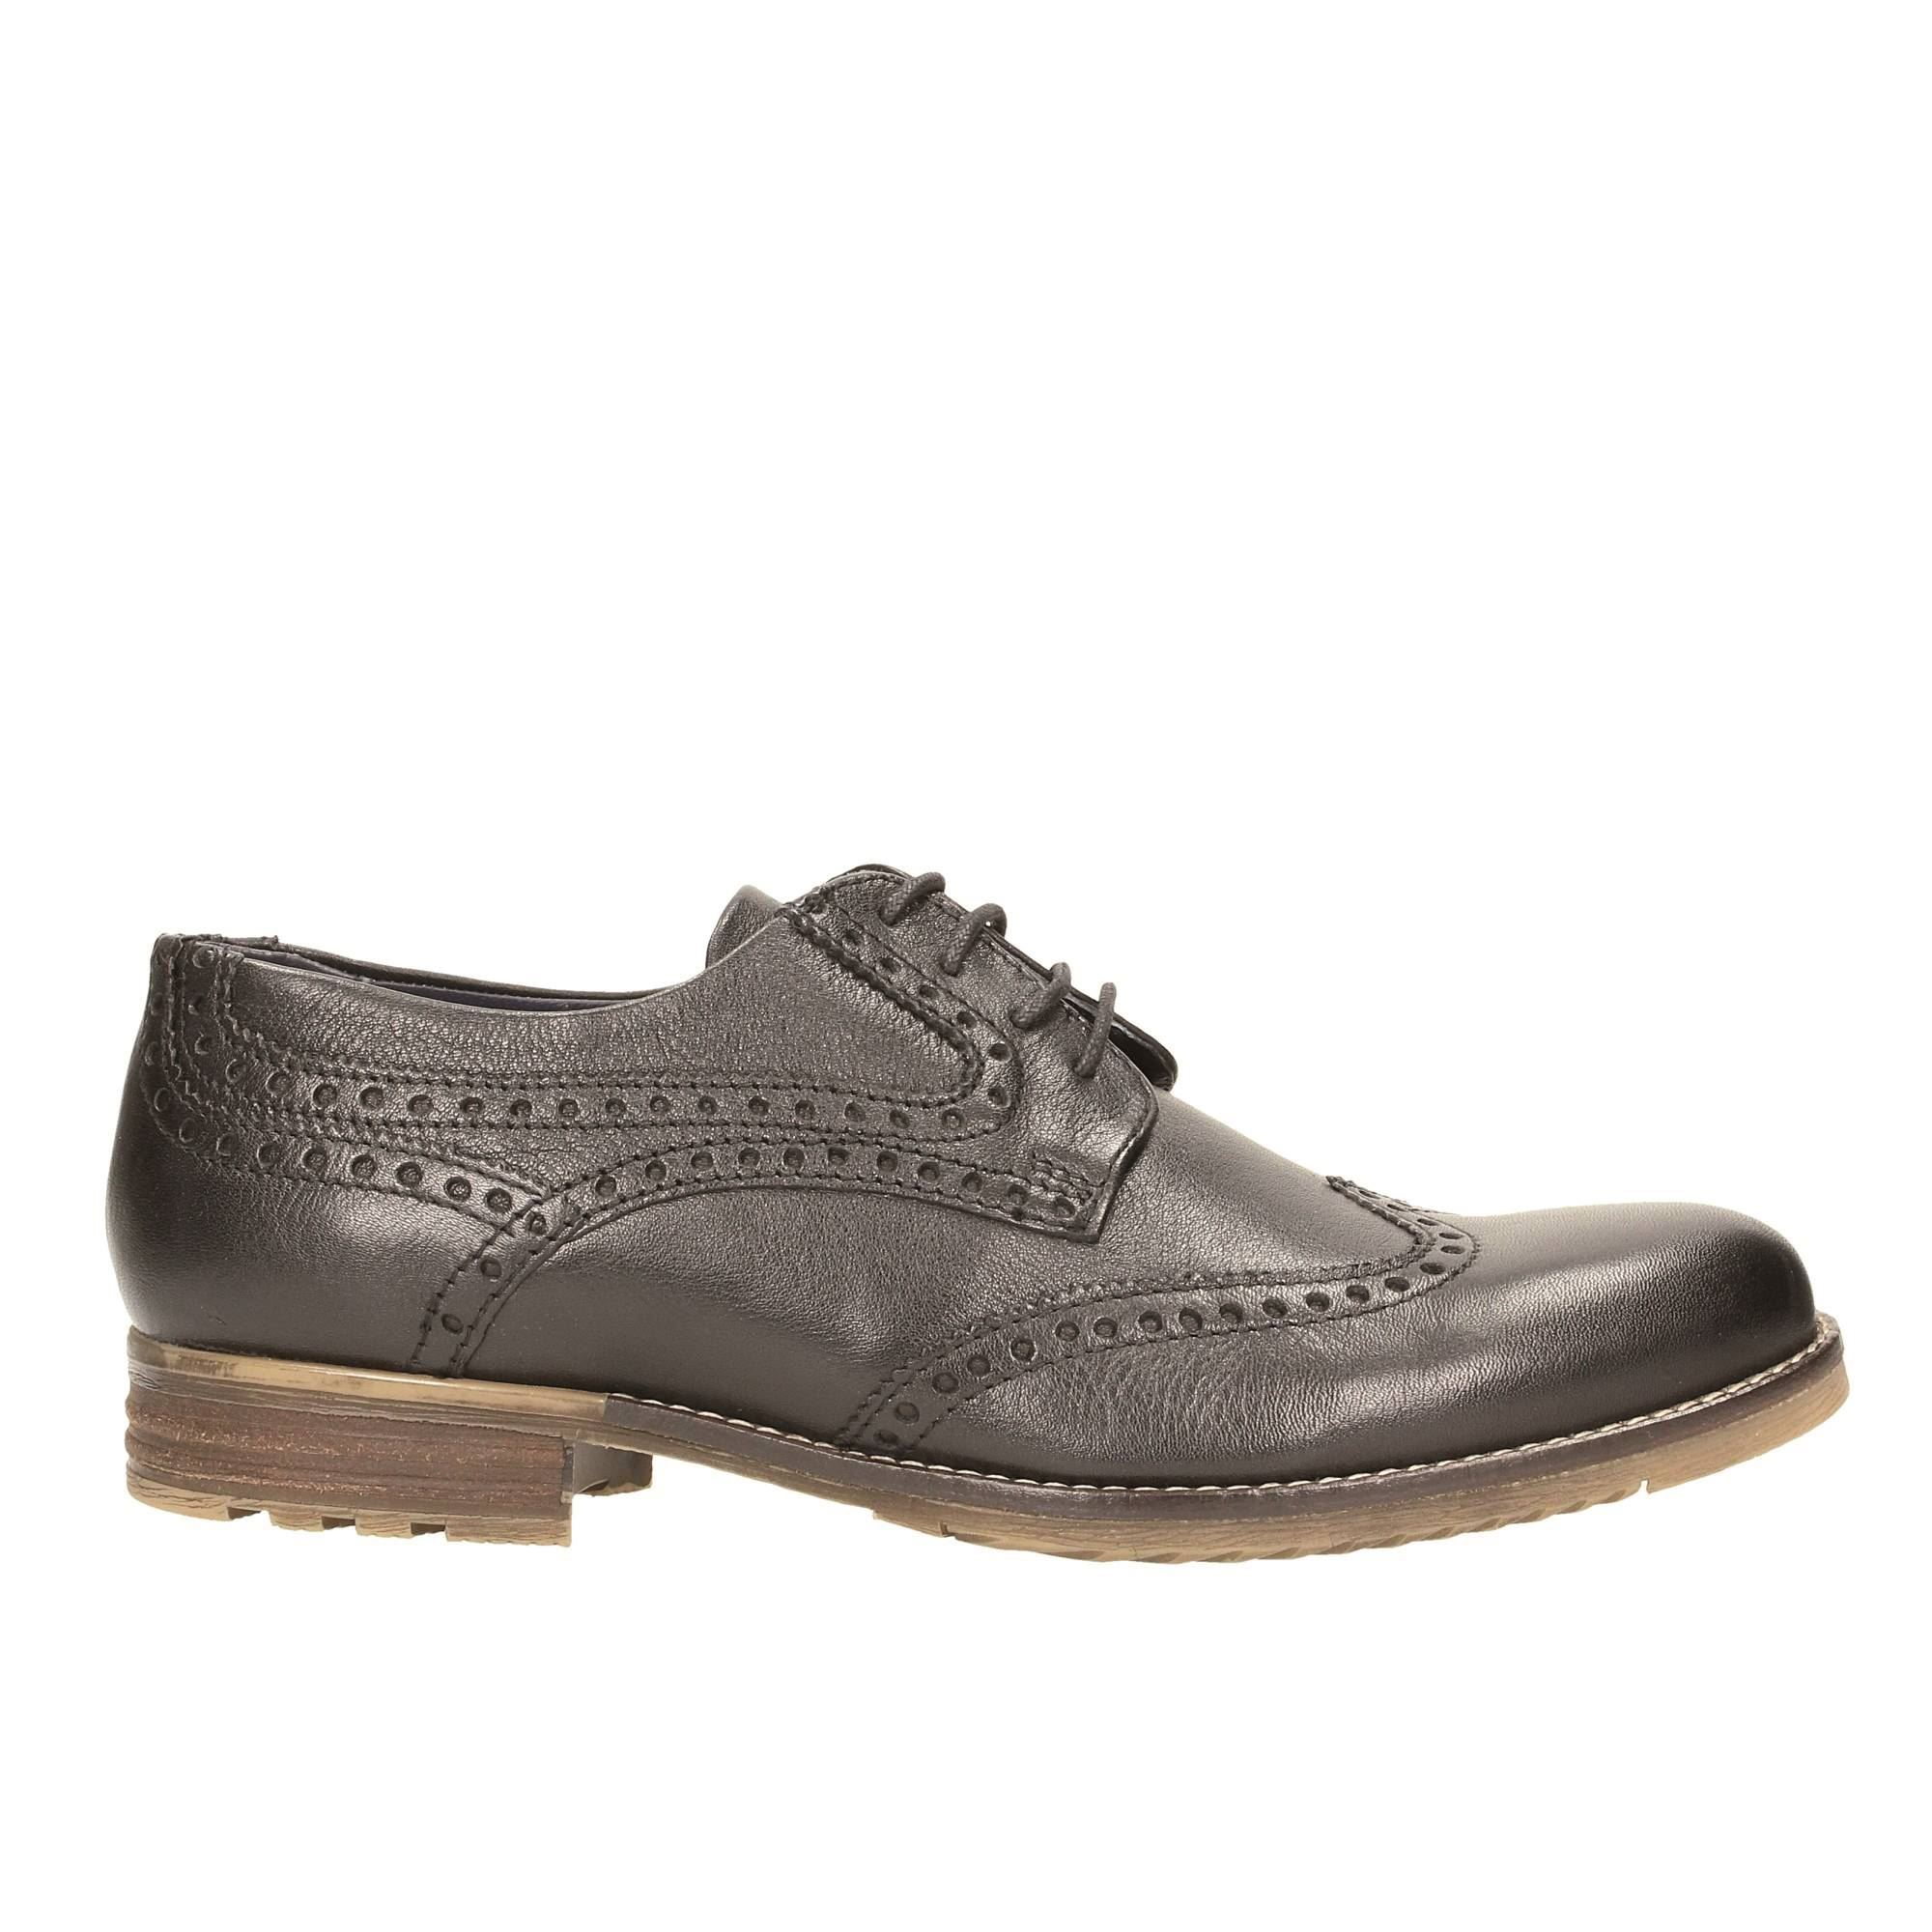 Tata Italia Shoes Man Derby Nero 15435/I17